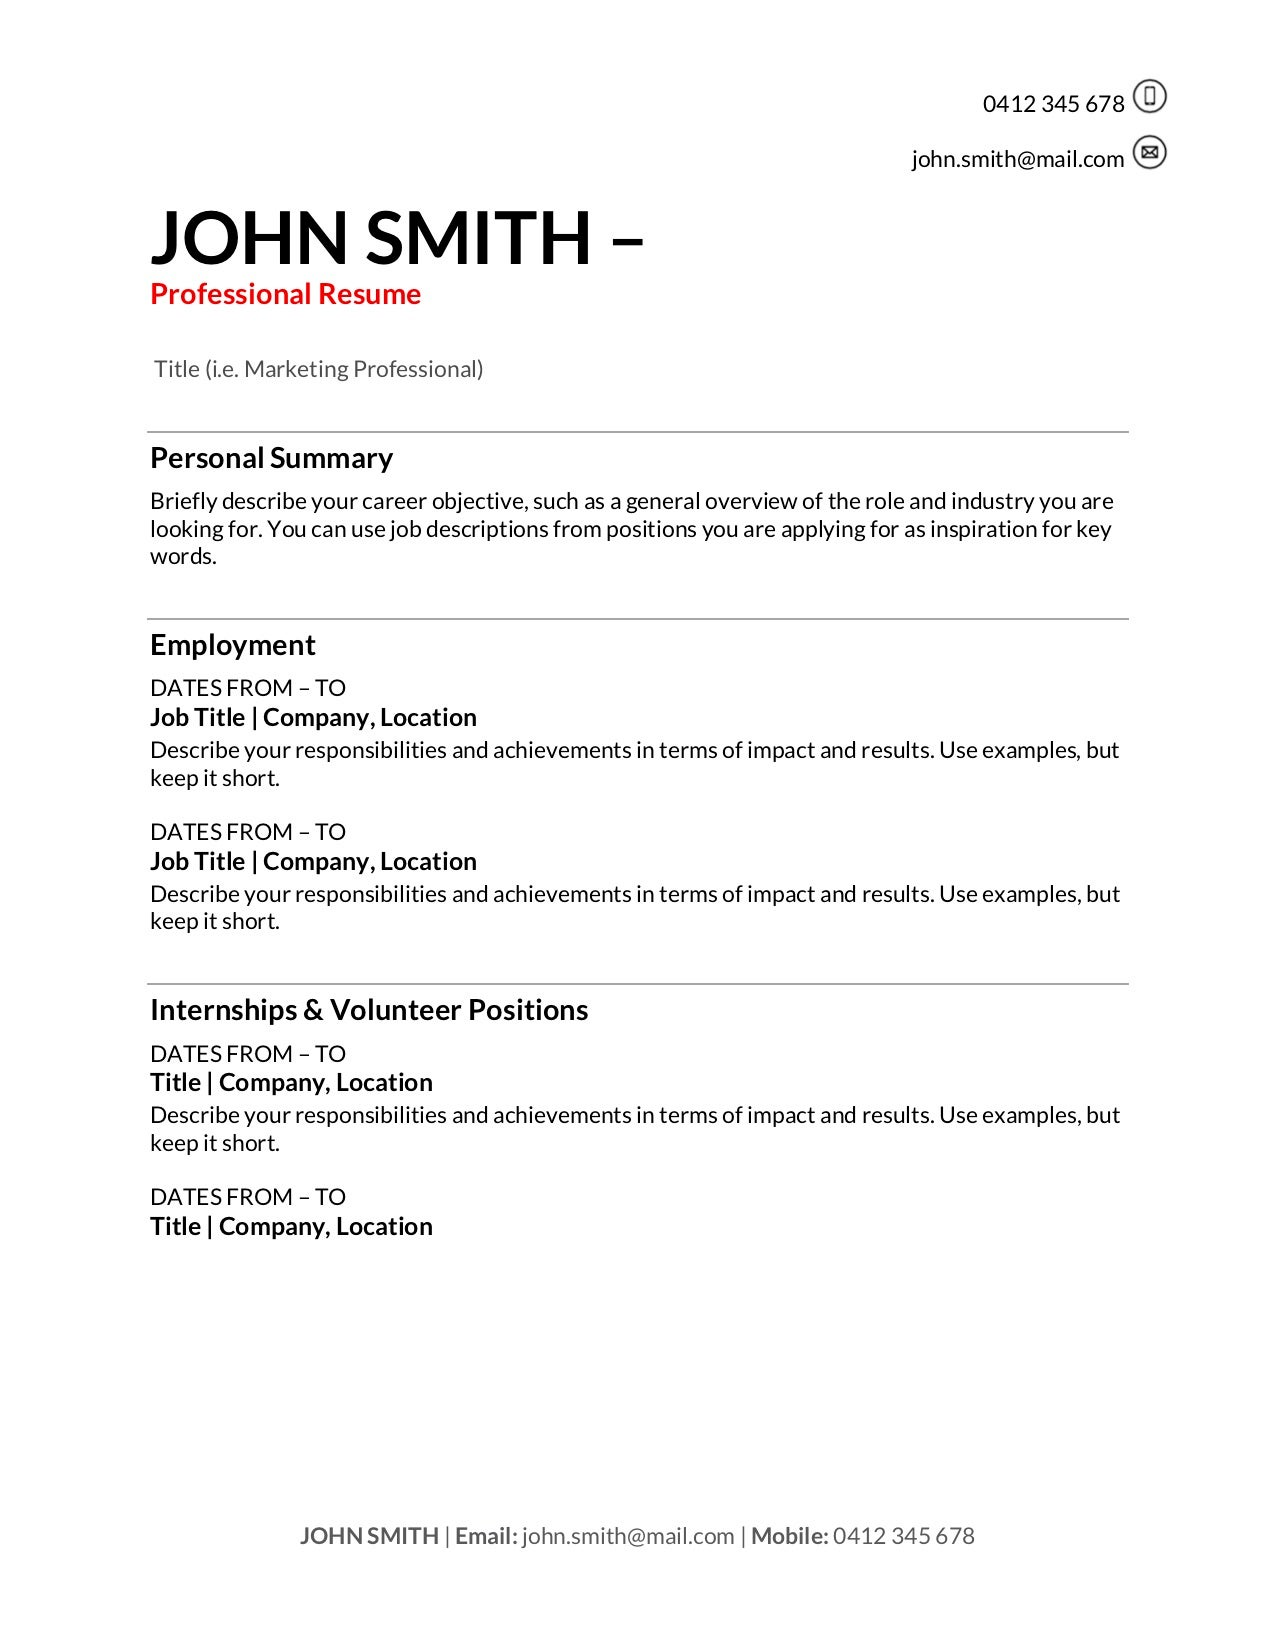 free resume templates to write in training au for any job position insurance examples Resume Resume For Any Job Position